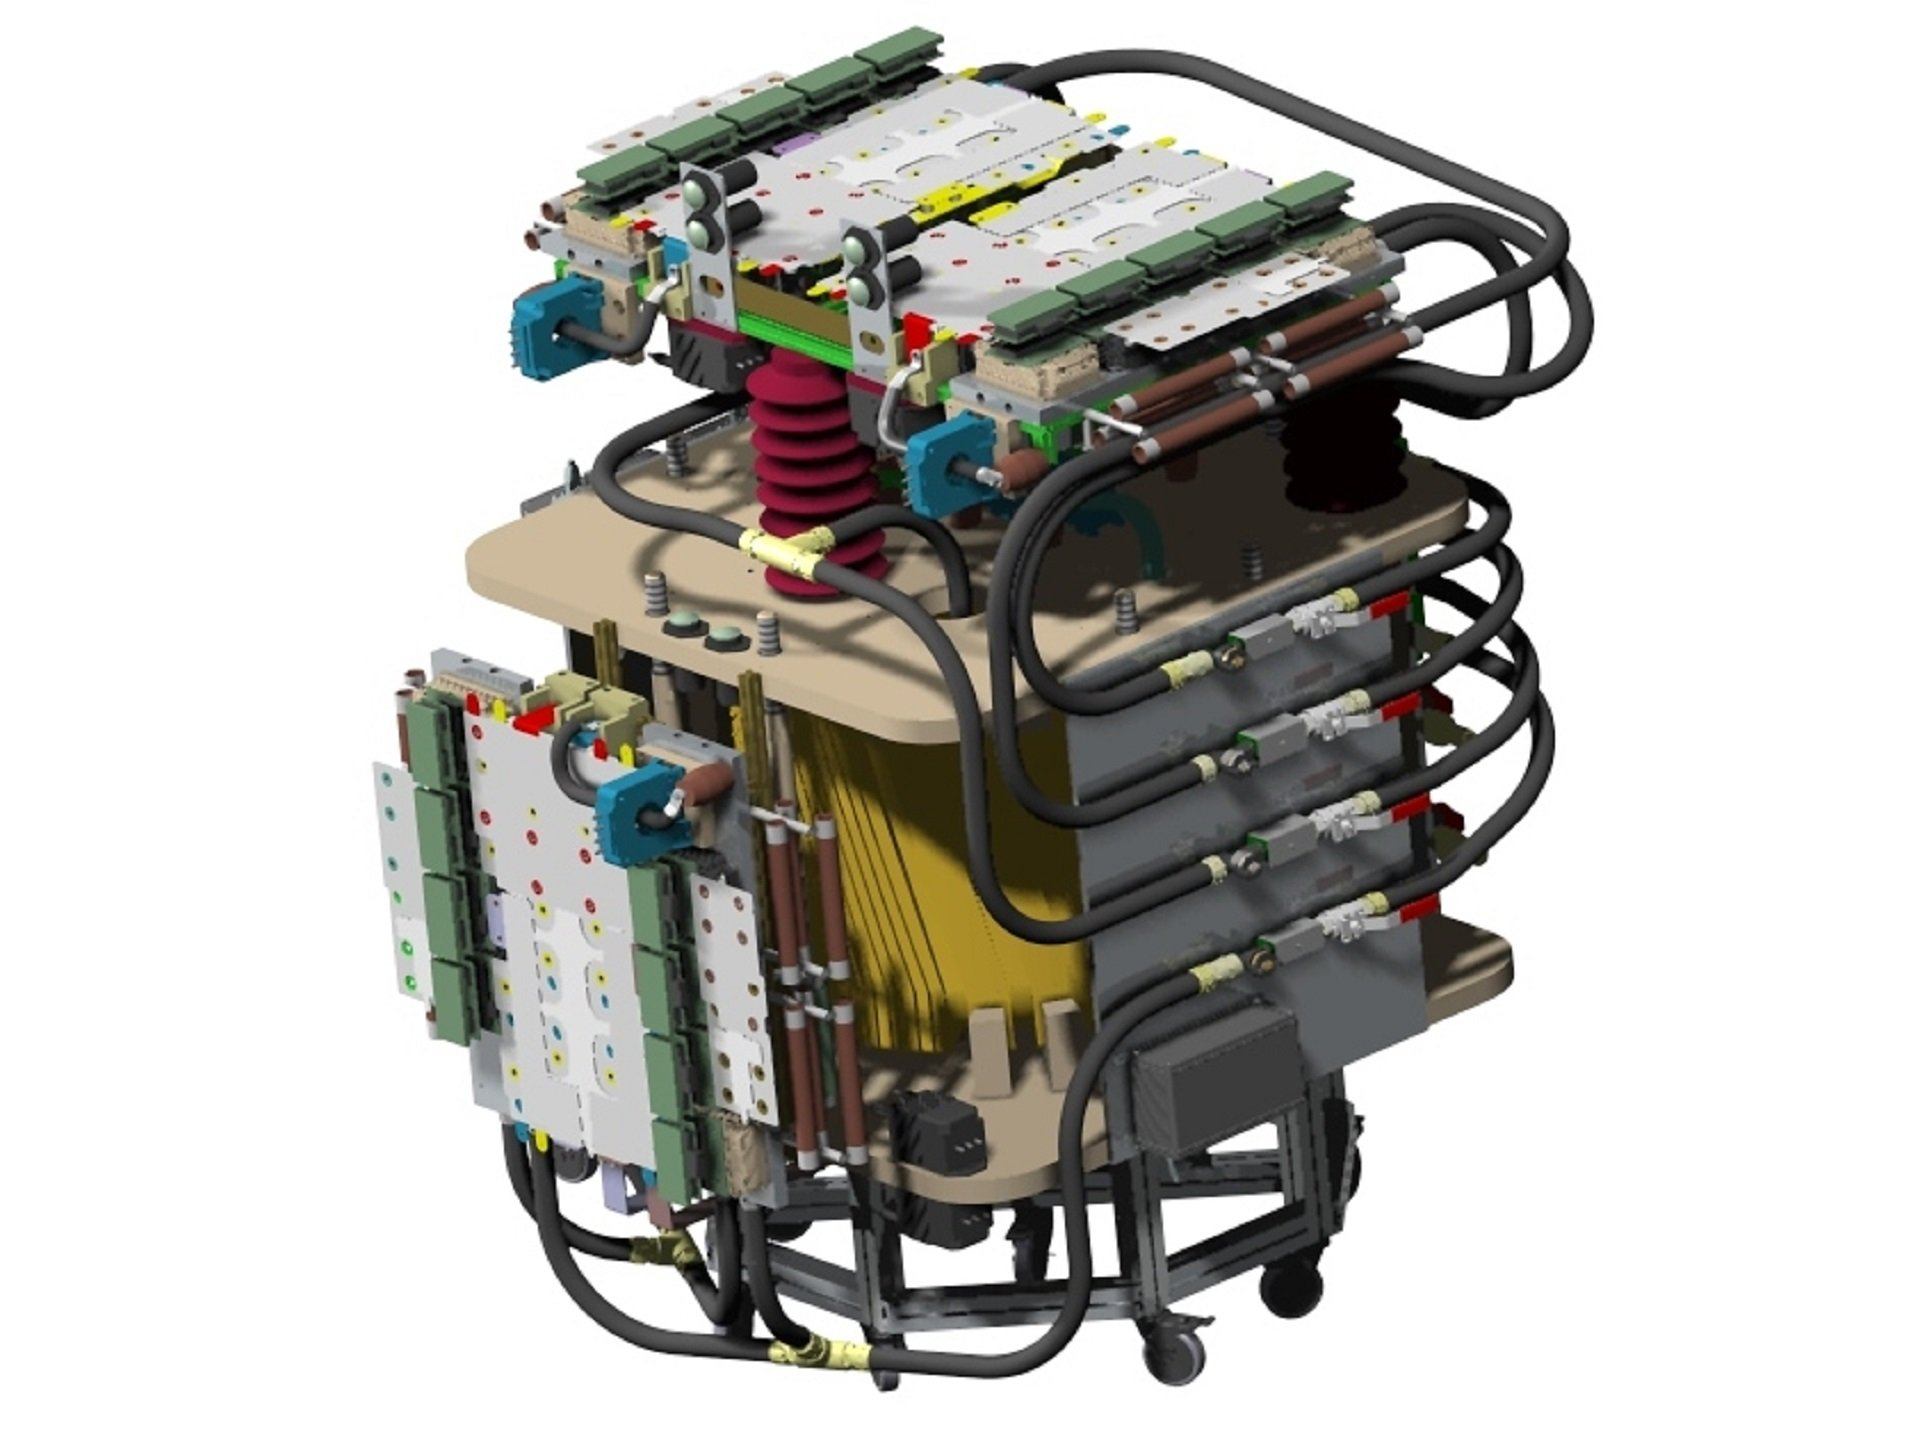 Power Converter Test Bench Supergrid Institute Electrical Circuit Training Board Our Platforms